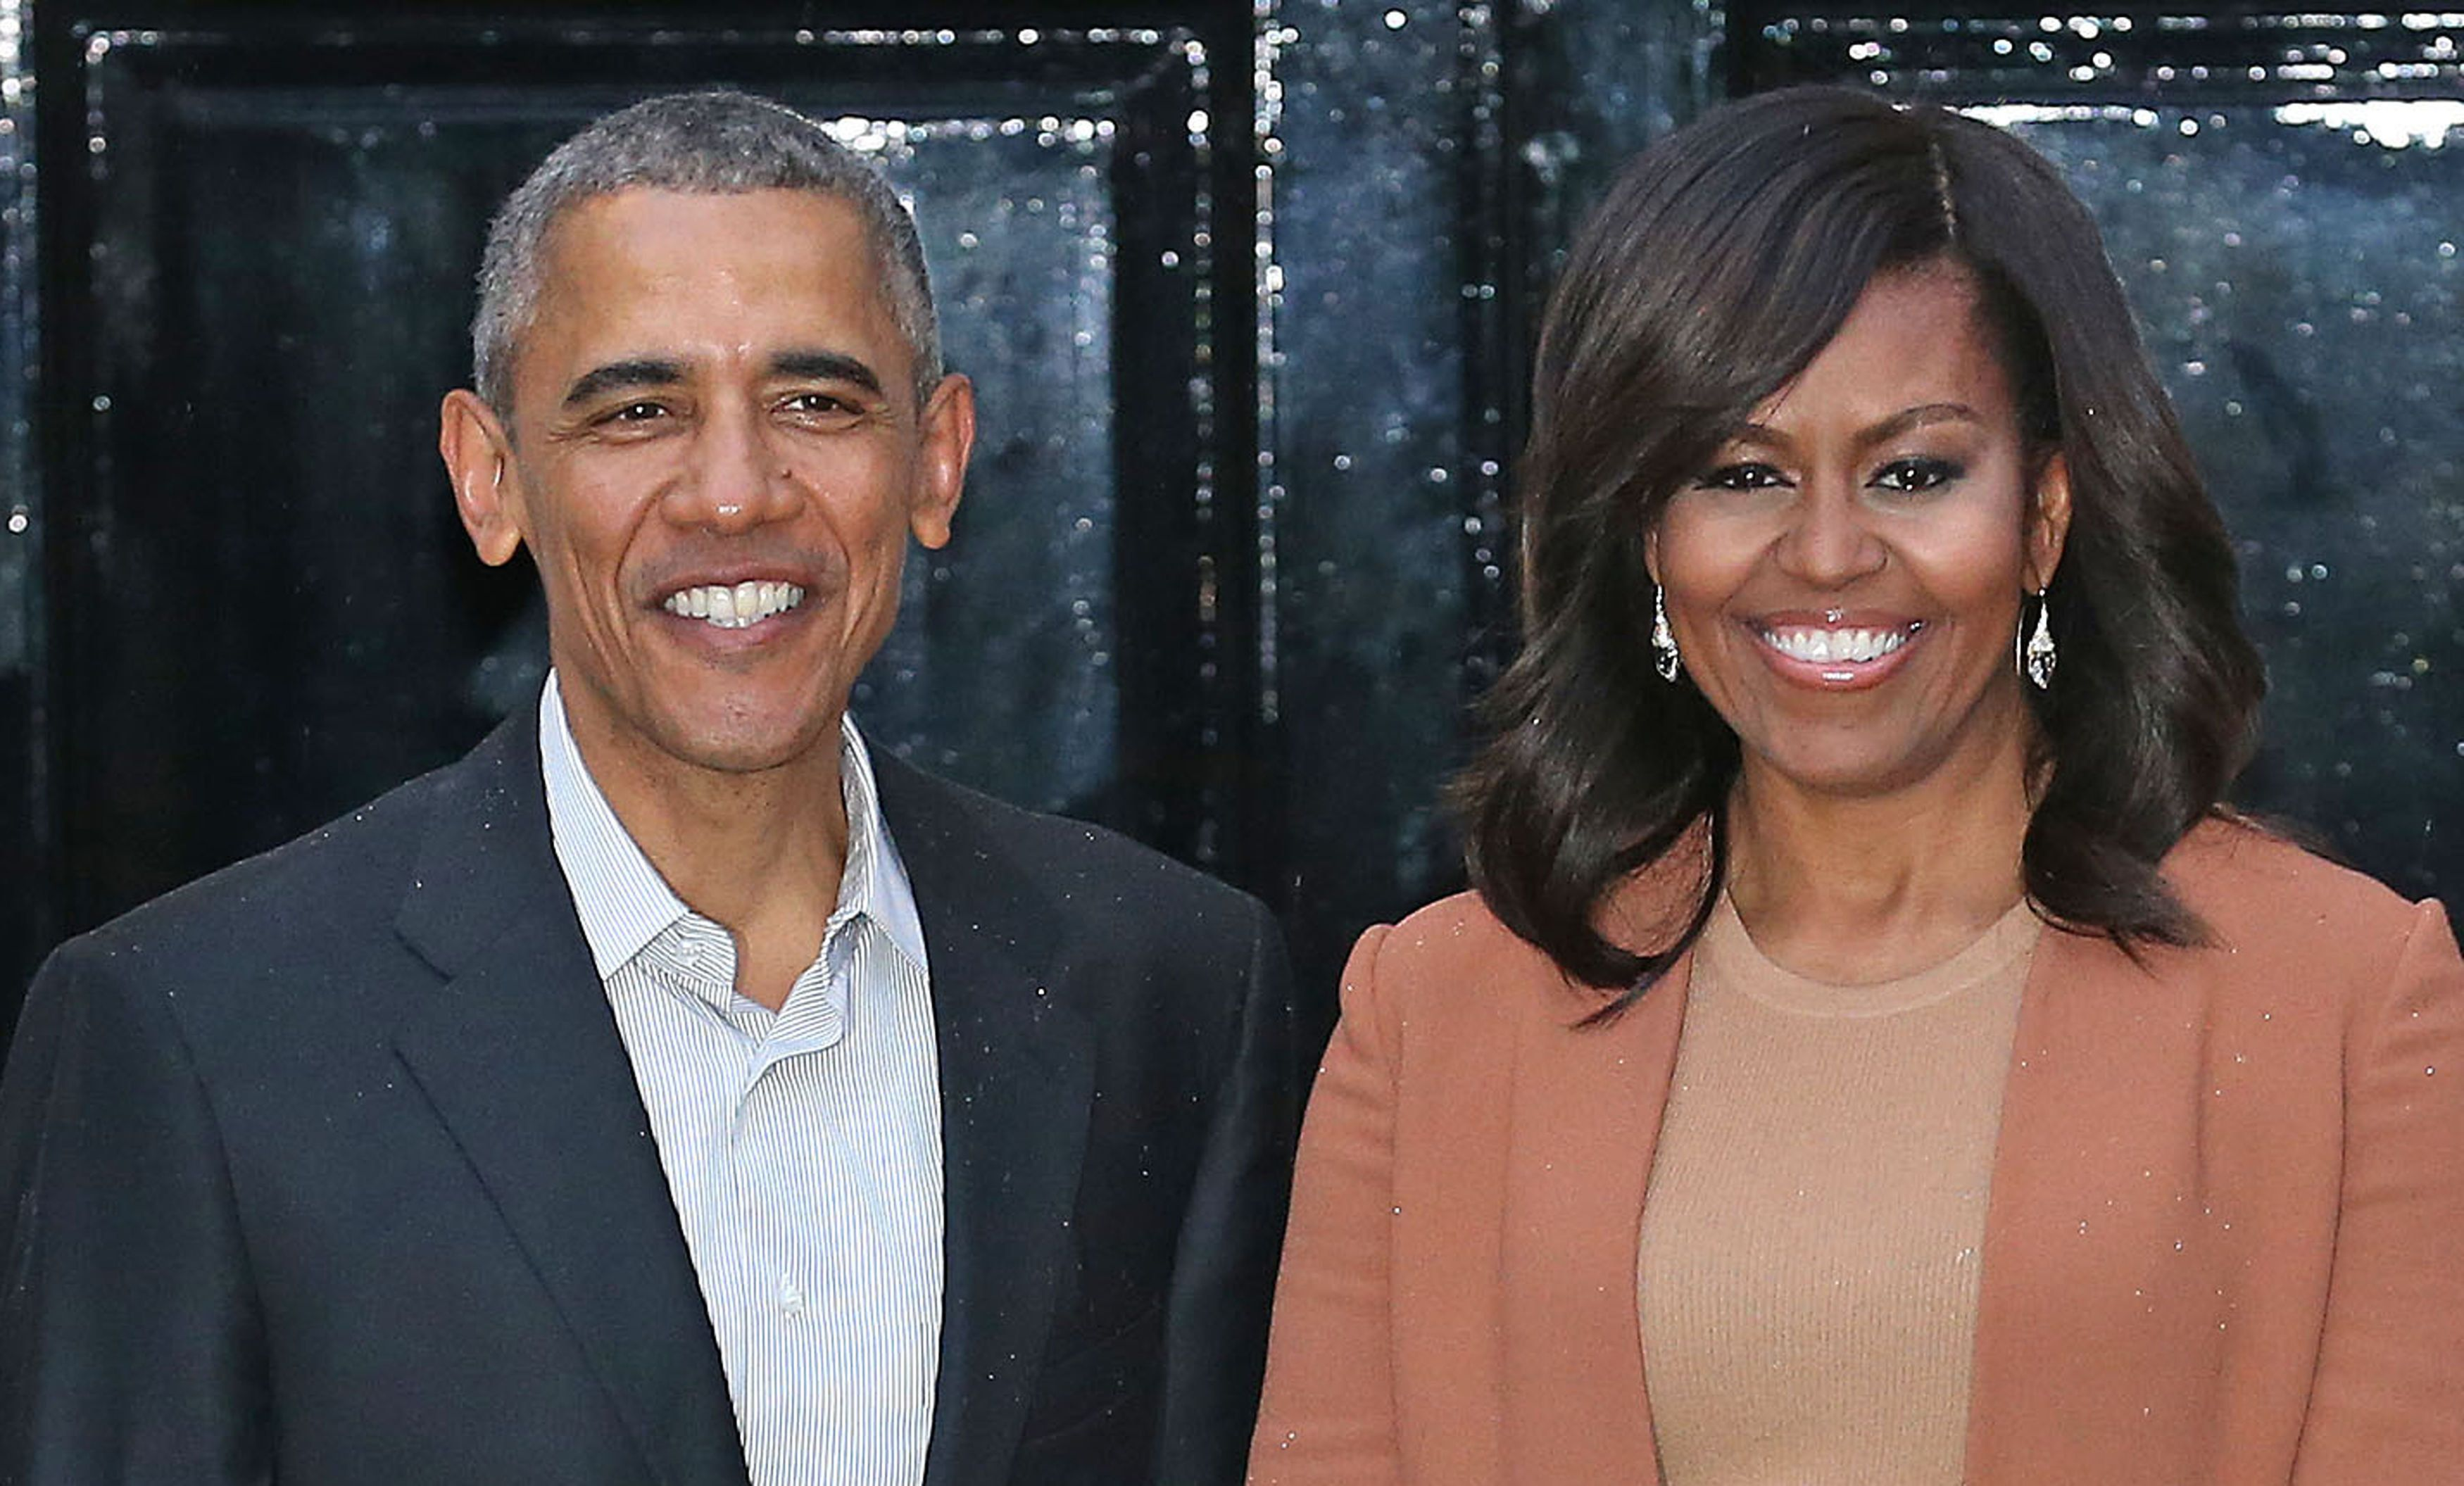 Barack and Michelle Obama are confirmed to be making shows for